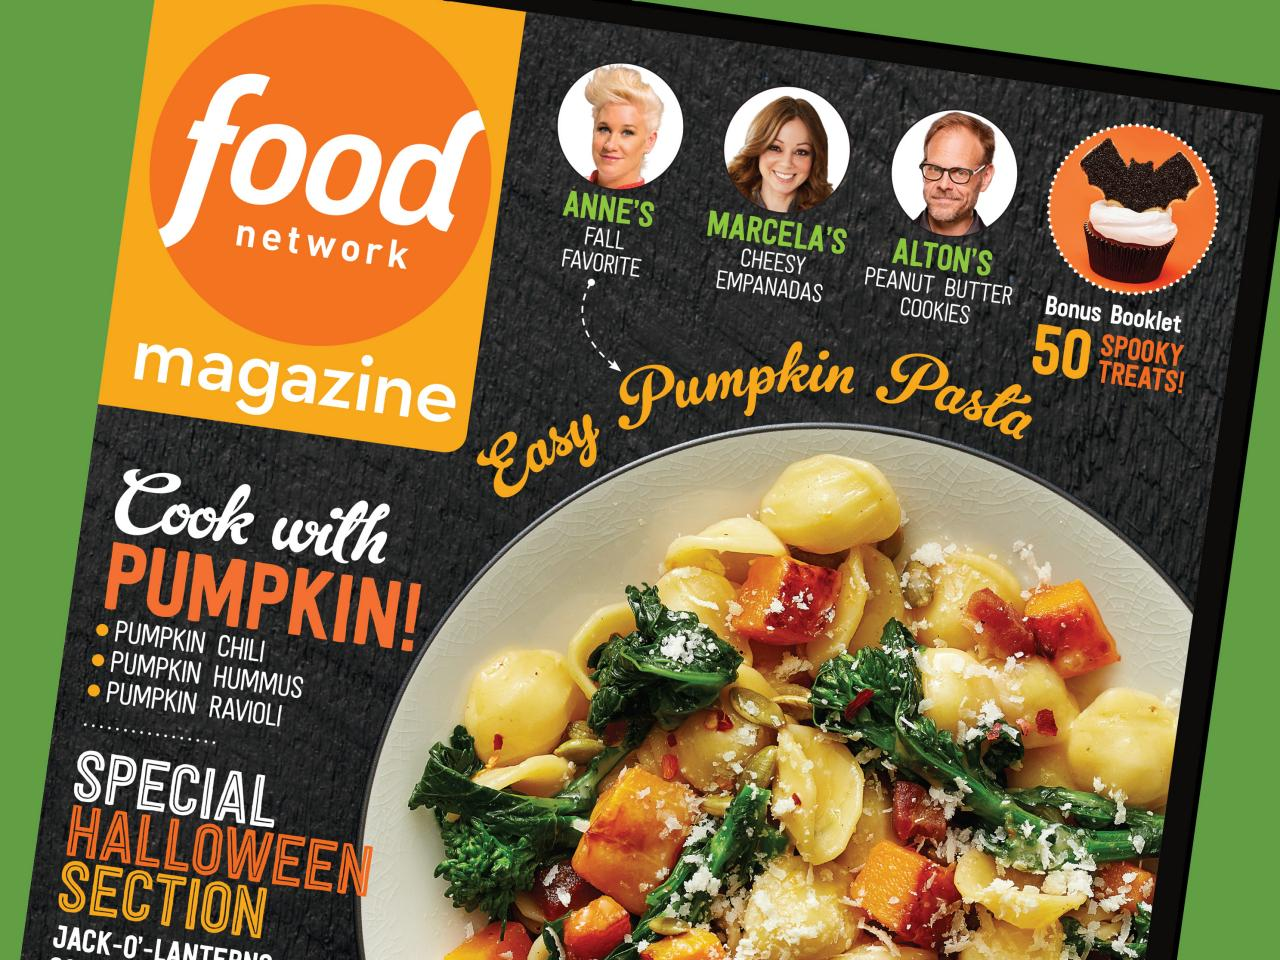 Food network magazine october 2016 recipe index food network food network magazine october 2016 recipe index forumfinder Choice Image